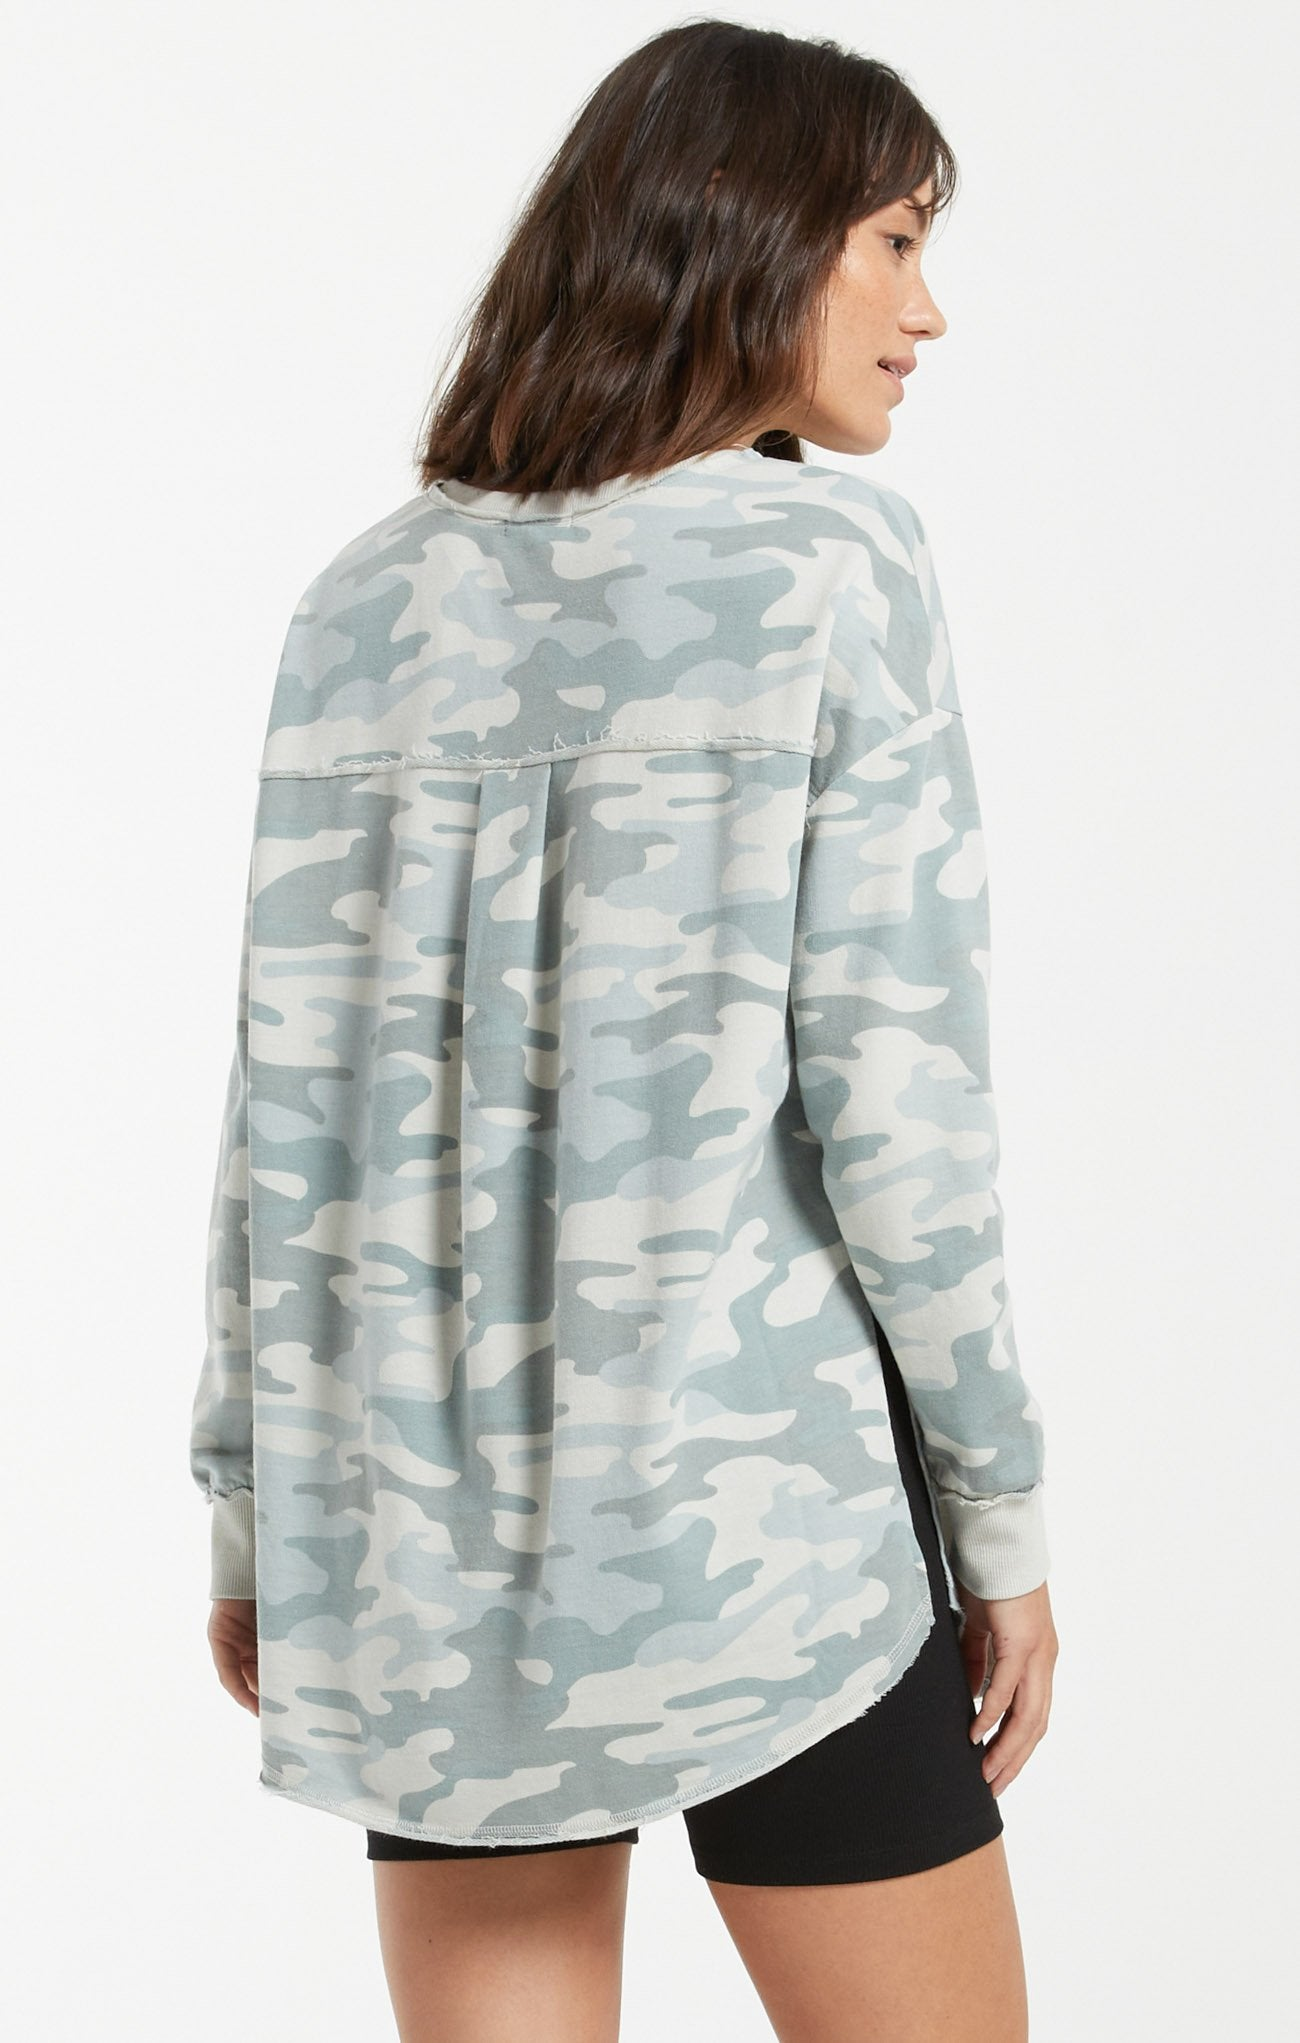 DUSTY CAMO V-NECK WEEKENDER - Penny Lane Boutique